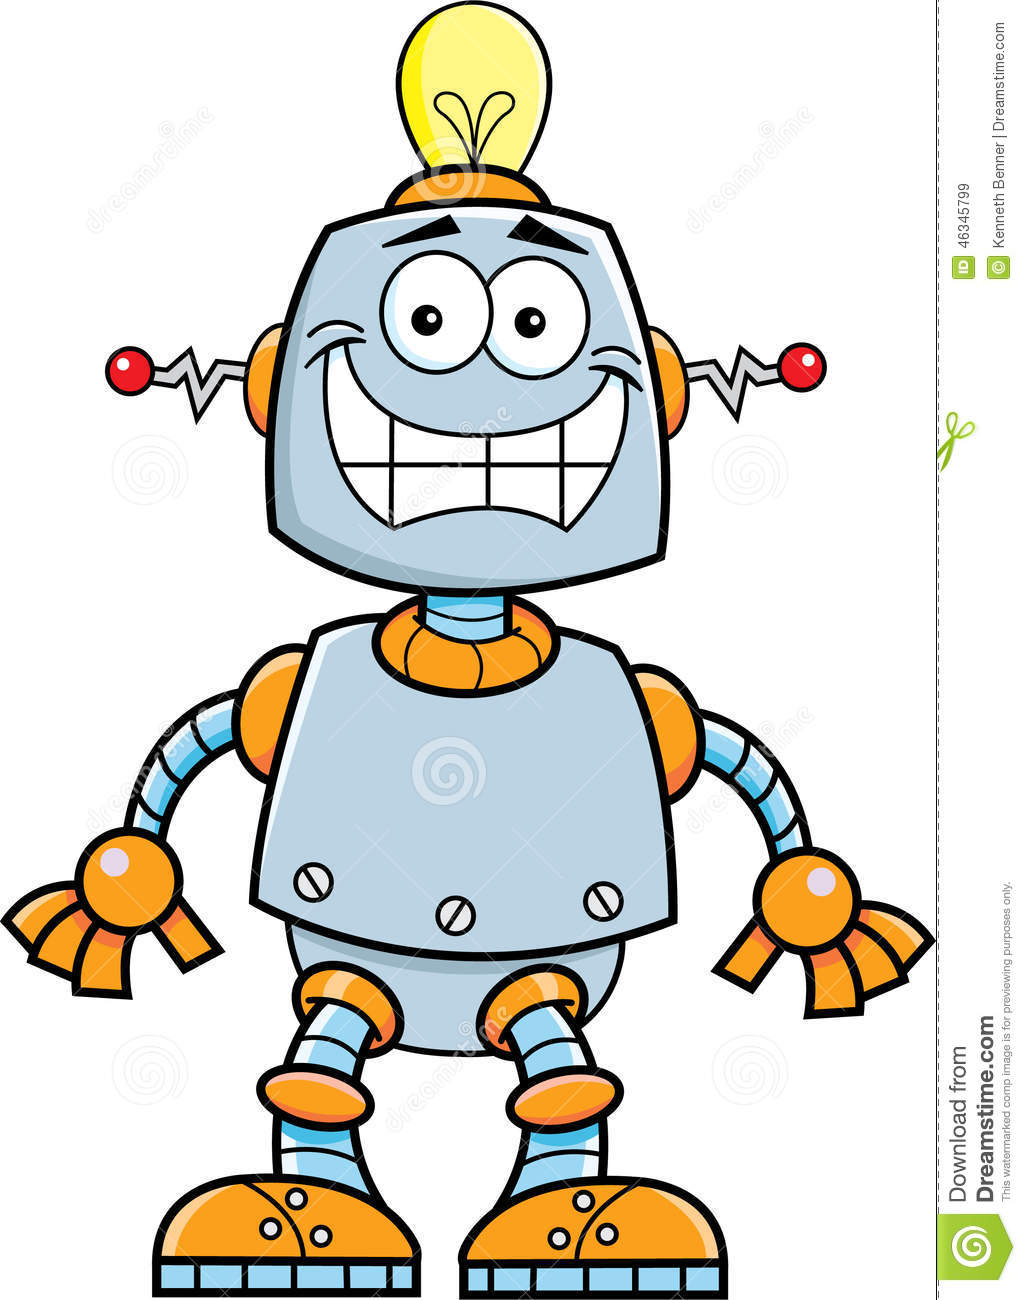 Smiling Robot Toy With Key In The Hole, Vector Illustration ...